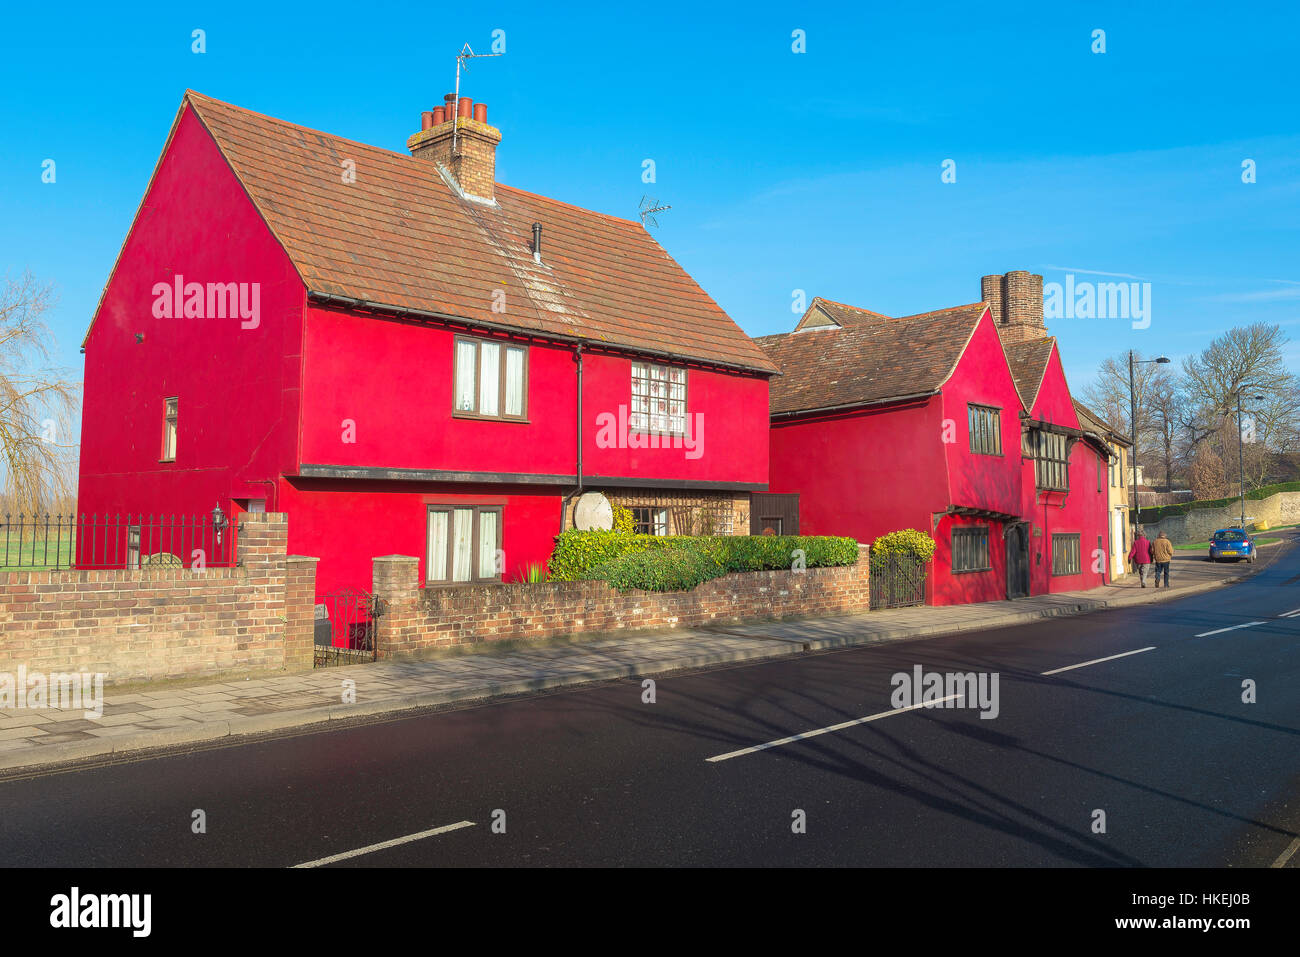 A colourful medieval town house in Cross Street Sudbury, Suffolk, Babergh district, UK - Stock Image